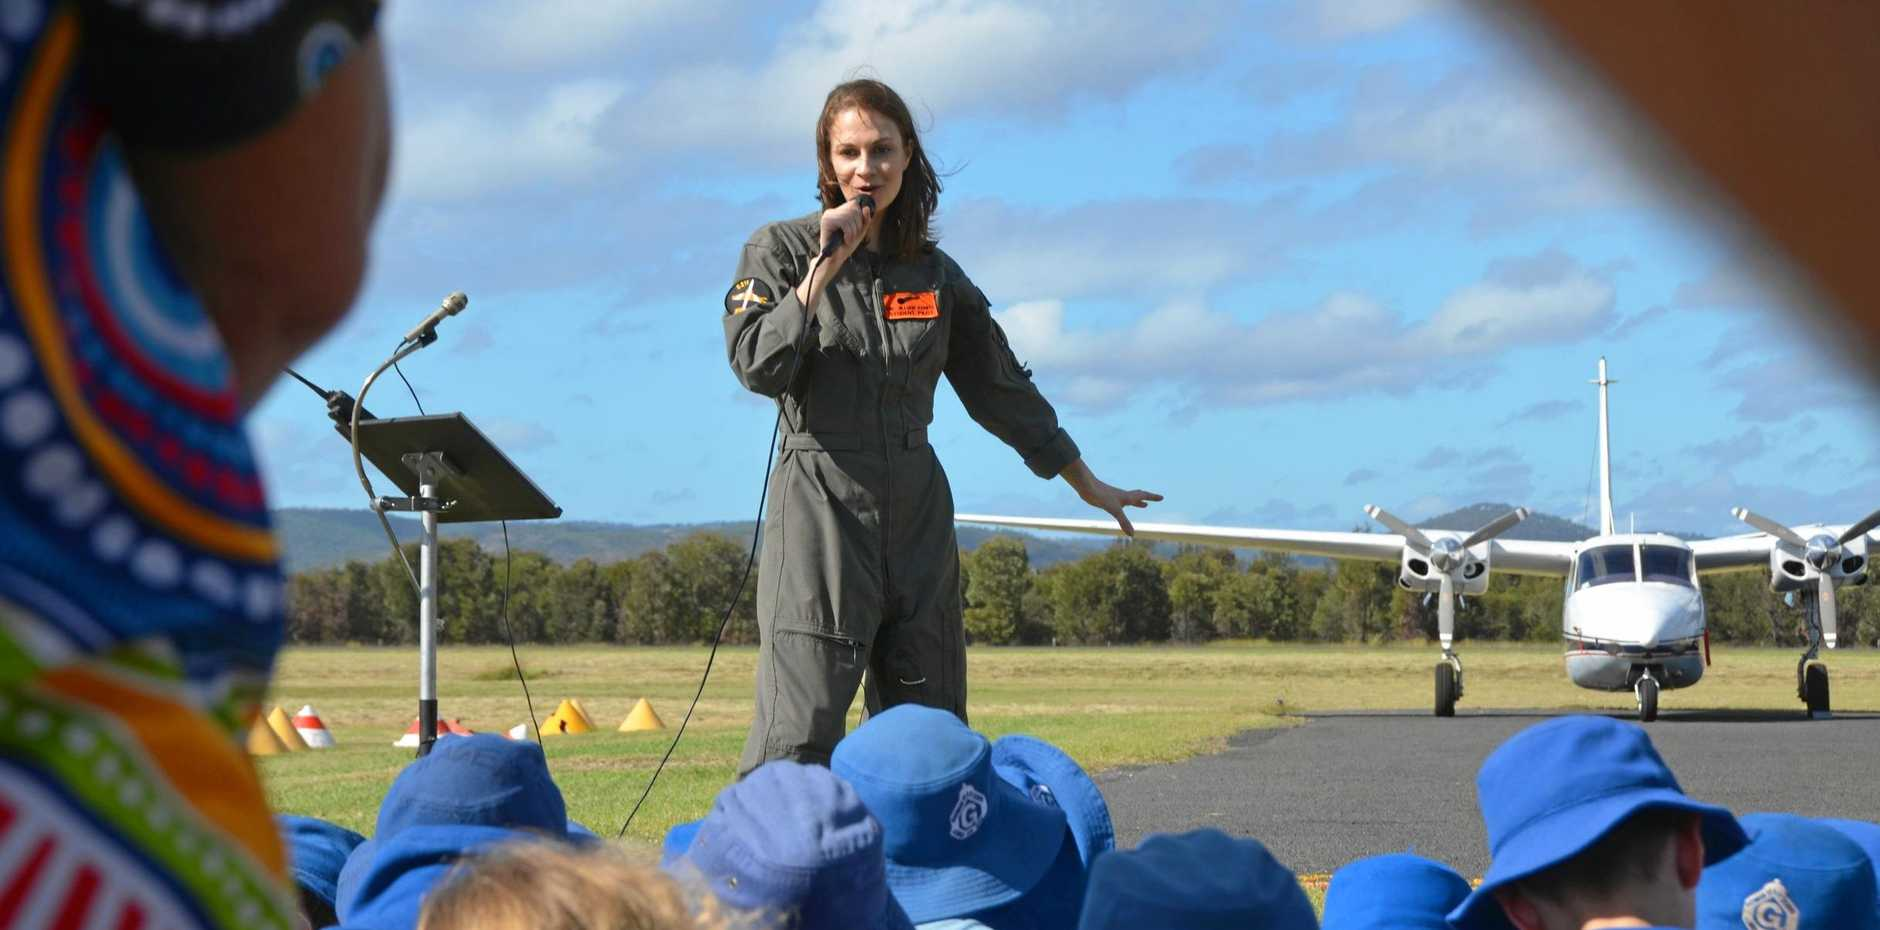 SKY'S THE LIMIT: Dr Jillian Kenny flies home to Gayndah in a fighter jet to inspire students alongside engineer Felicity Furey, engineer and inventor Steve Gale and Willie